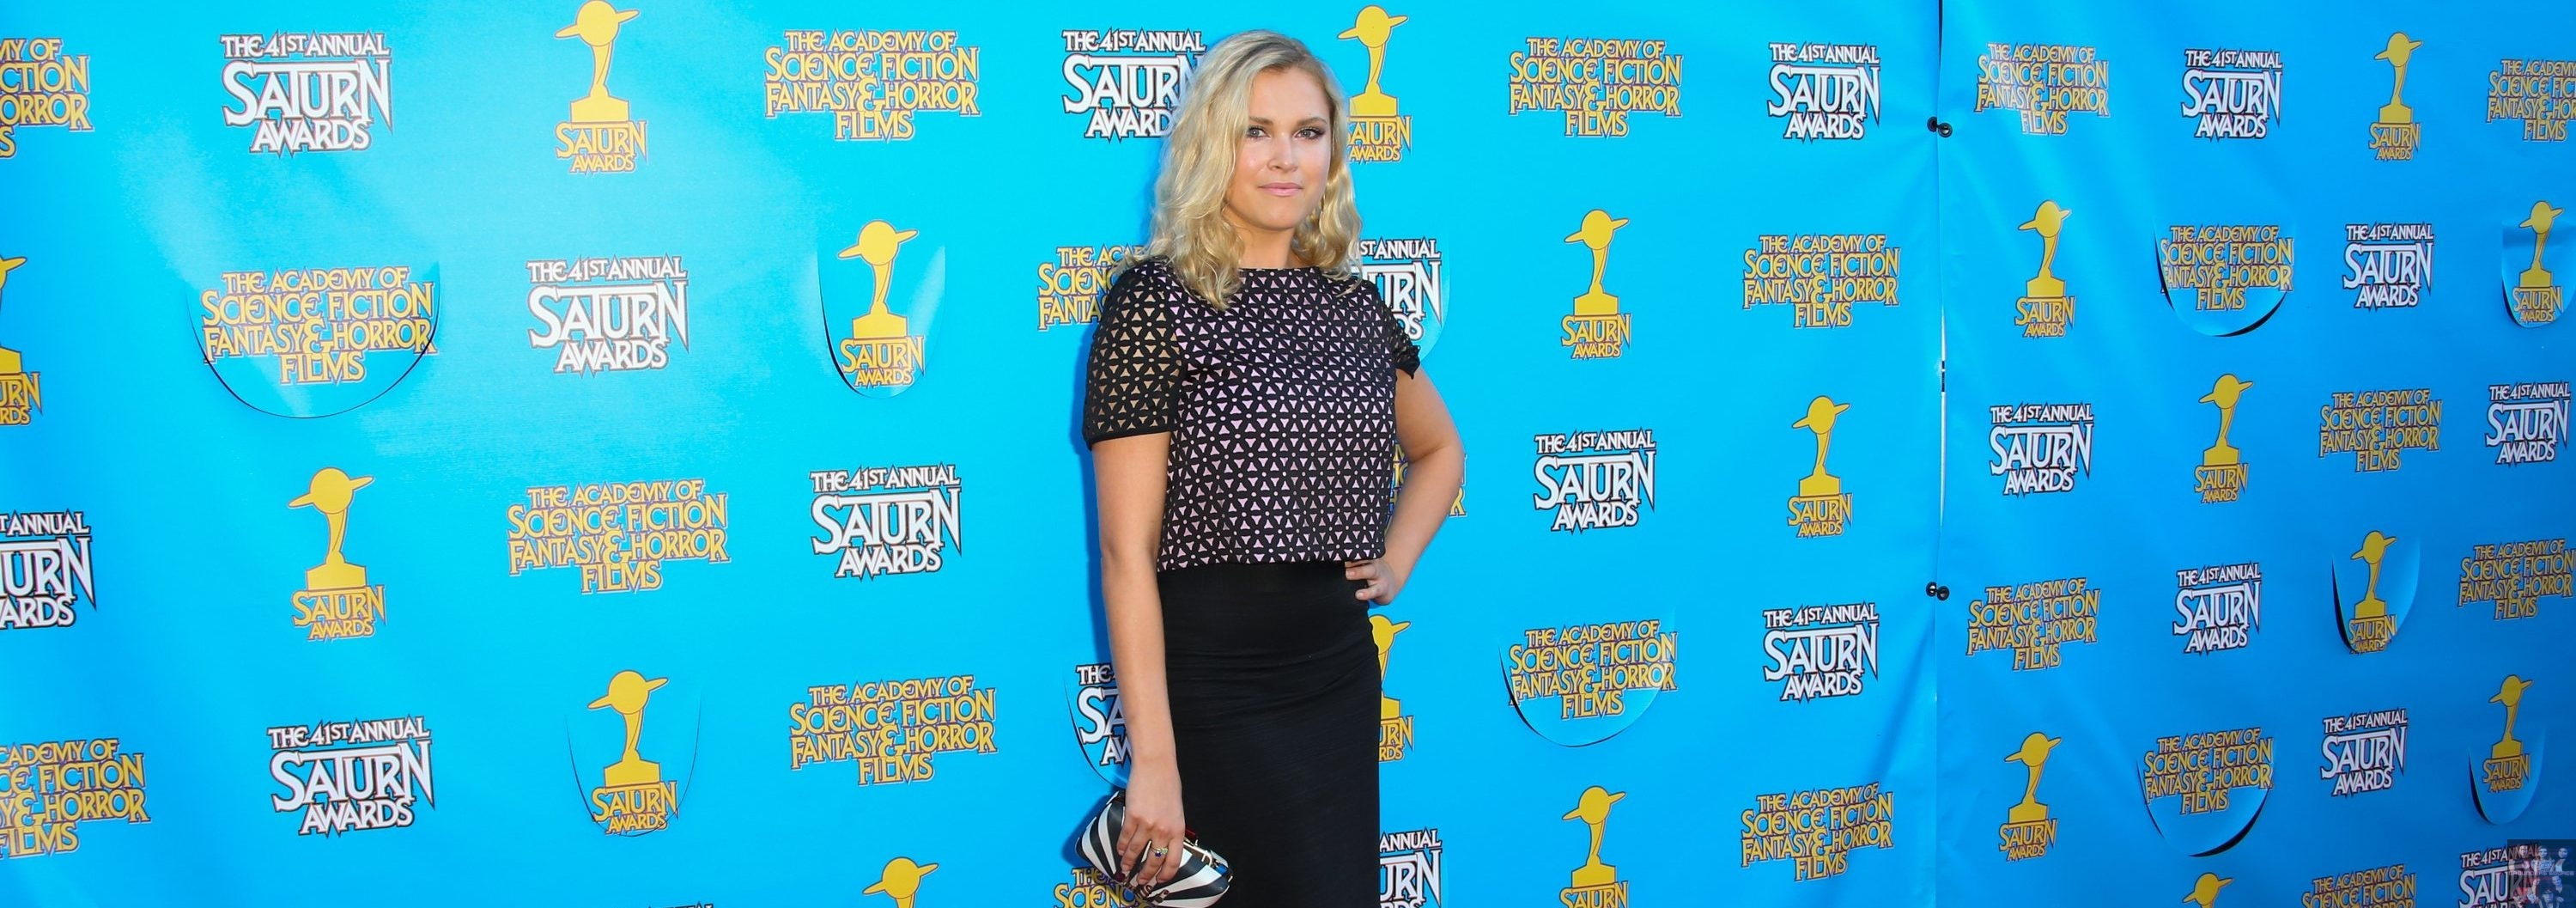 Saturn Awards 2018